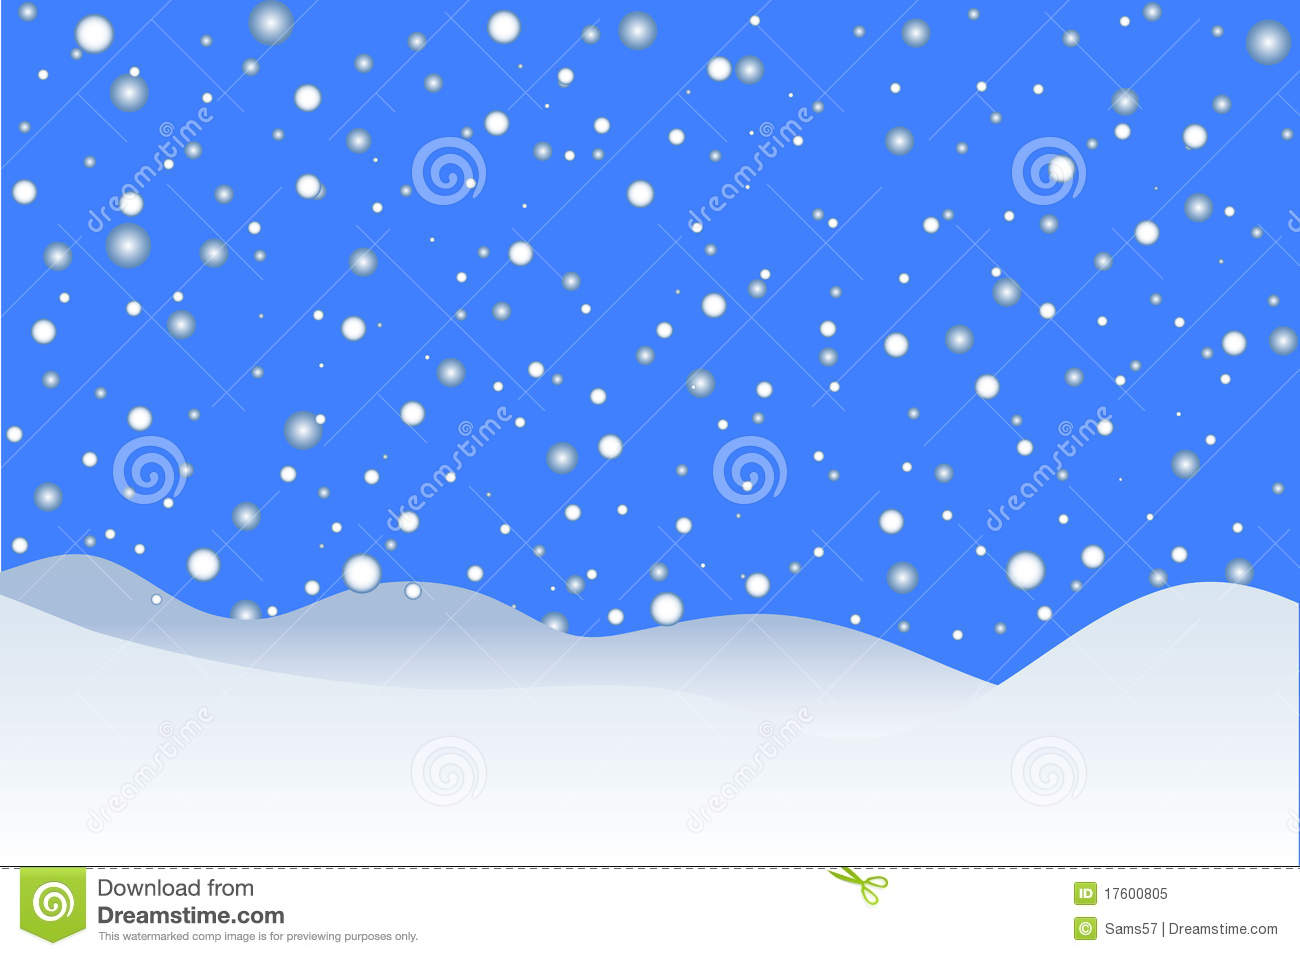 Free Animated Snow Fall Wallpaper Snowing Winter Background Stock Vector Image Of Beauty